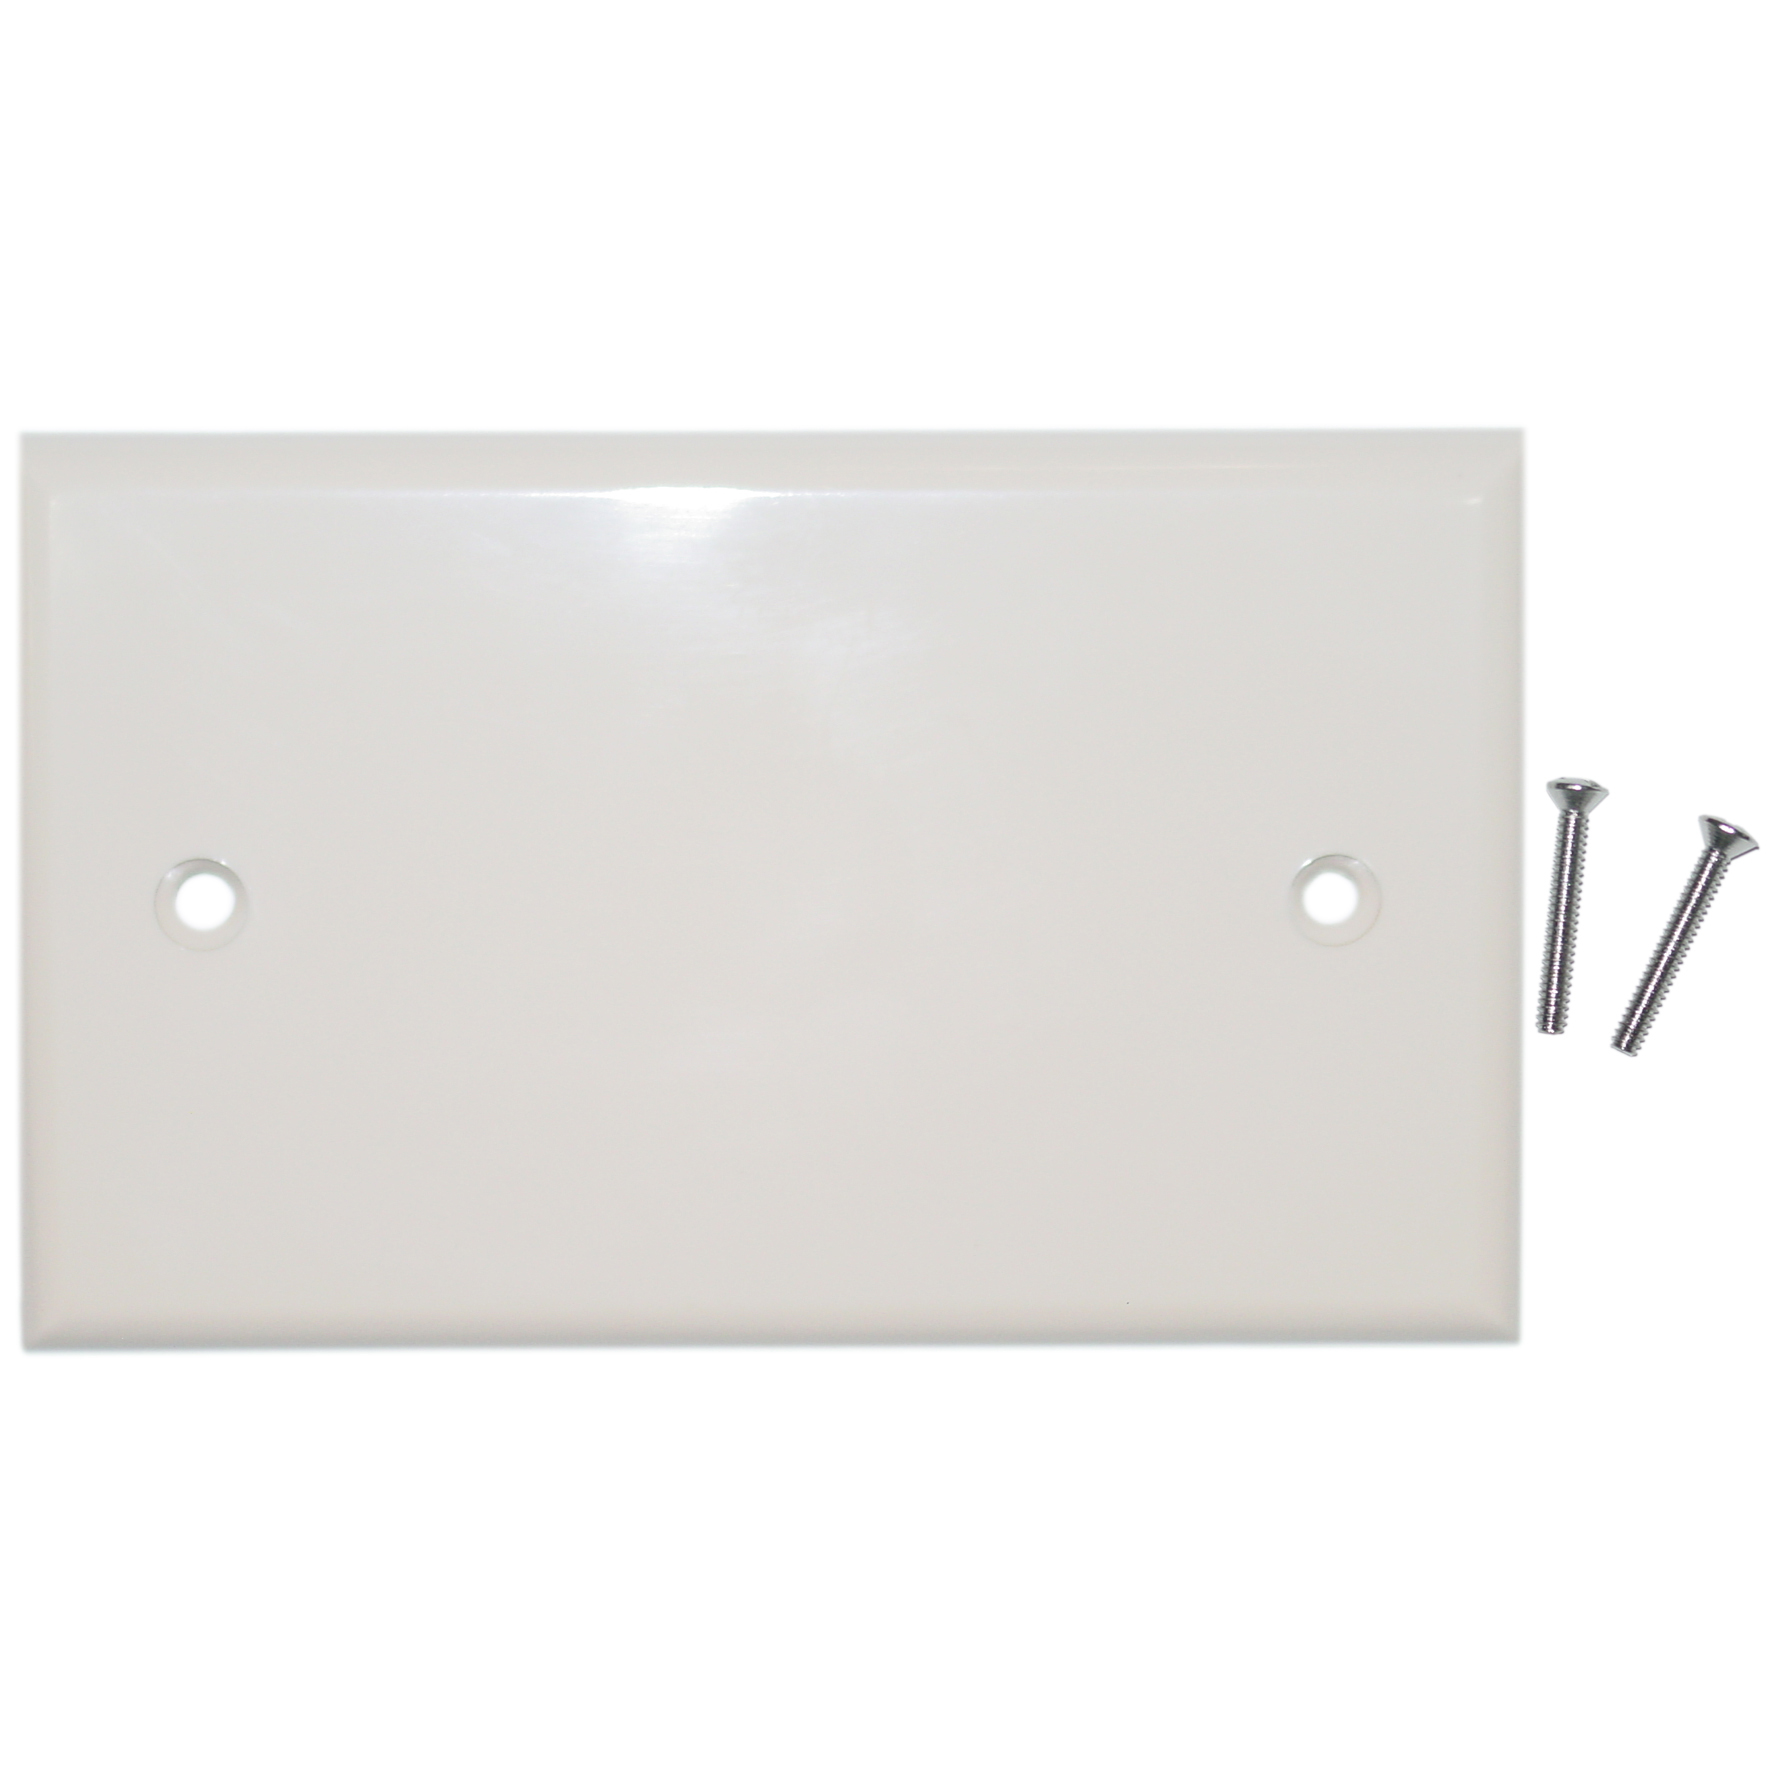 Blank Switch Plate Magnificent Wall Plate  Beigeivory Blank Cover Plate Review